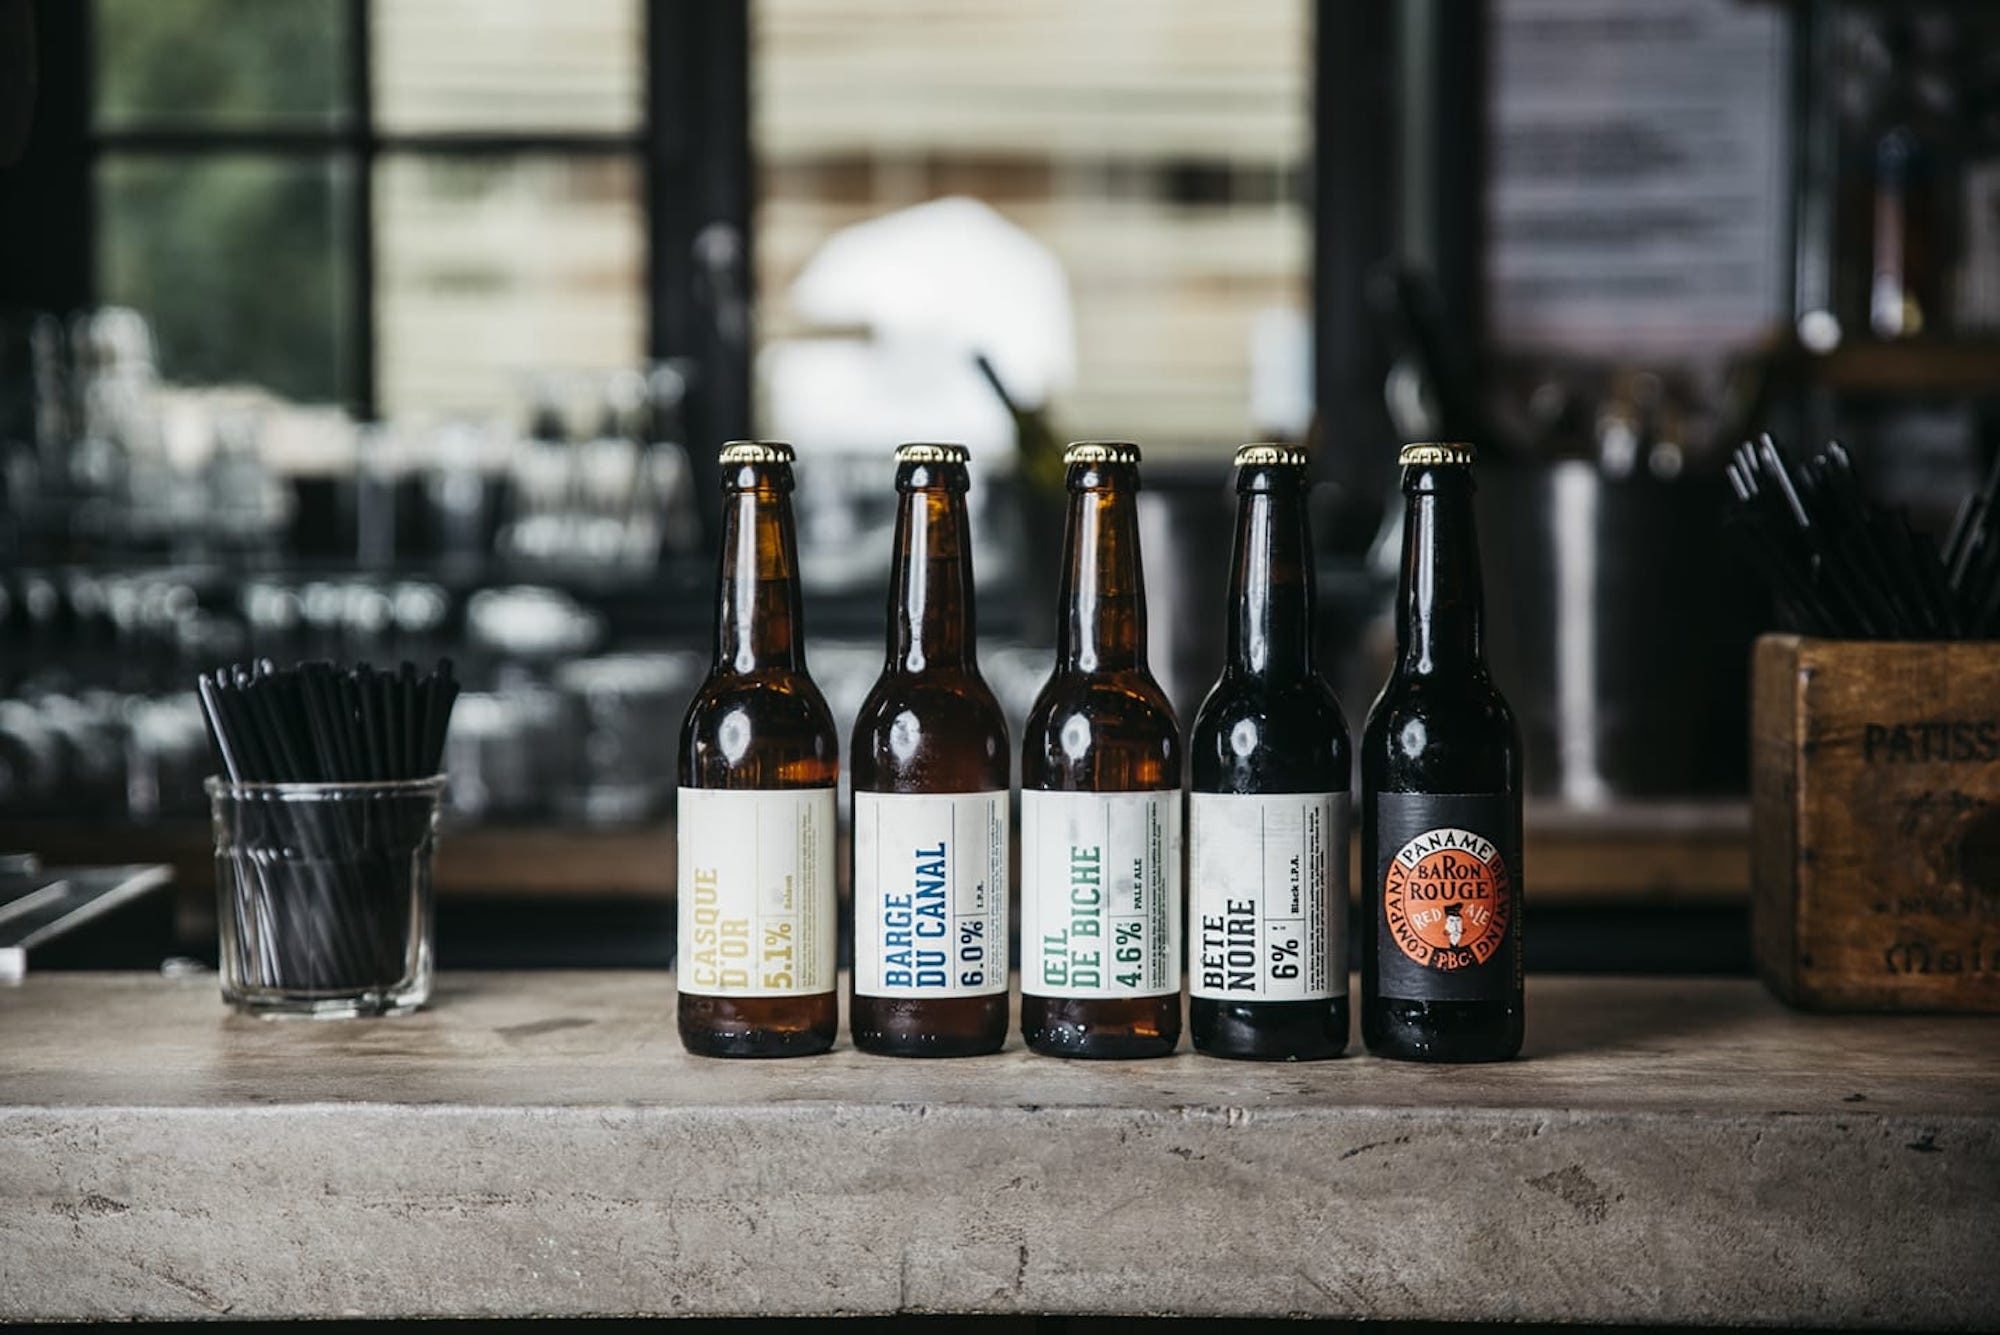 Five artisanal beers lined up on a bar counter